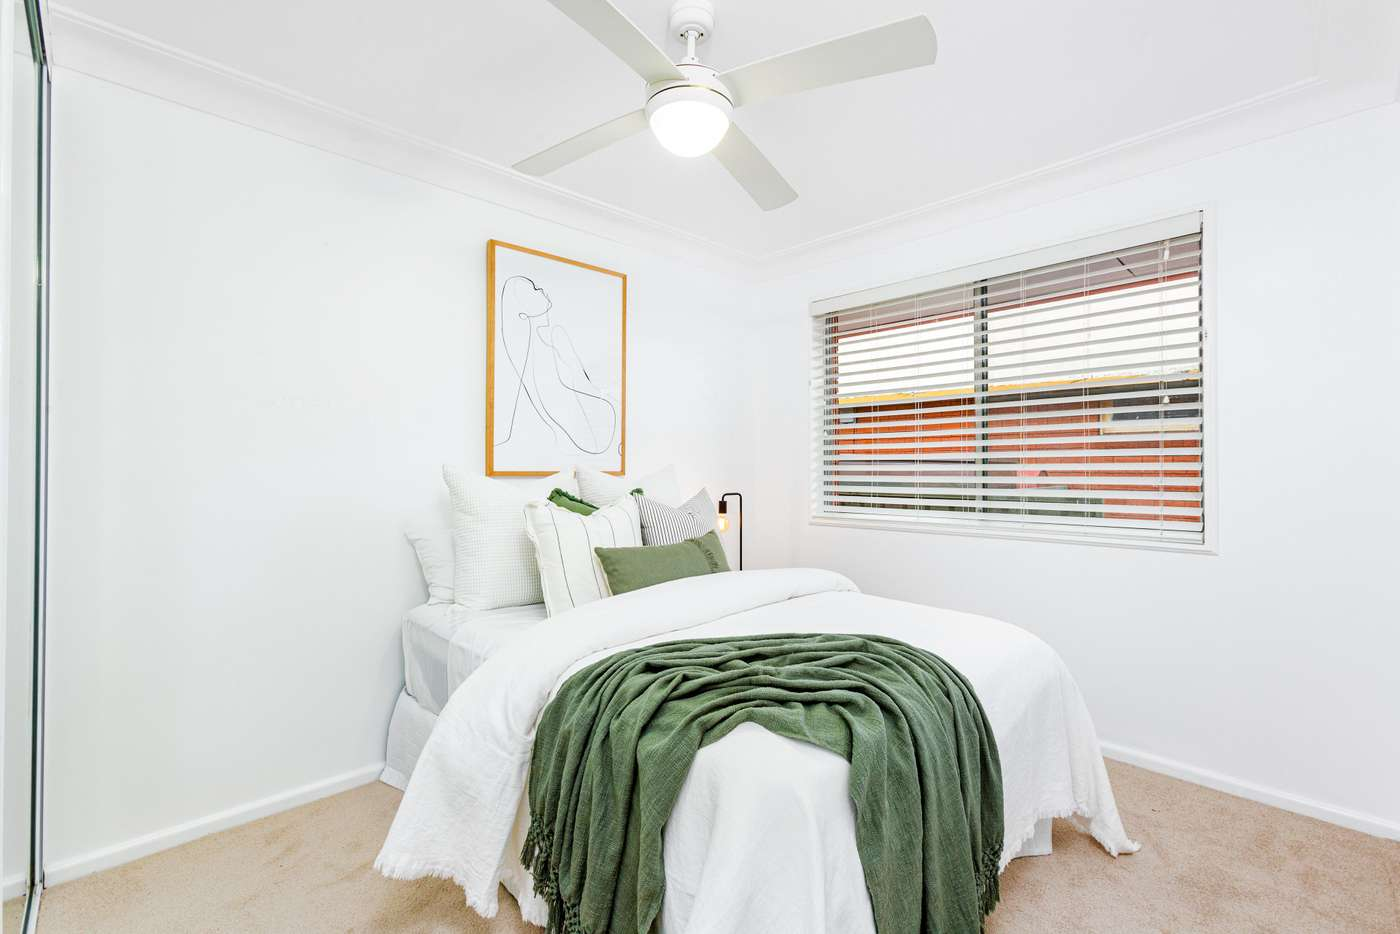 Sixth view of Homely house listing, 10 Reppan Avenue, Baulkham Hills NSW 2153